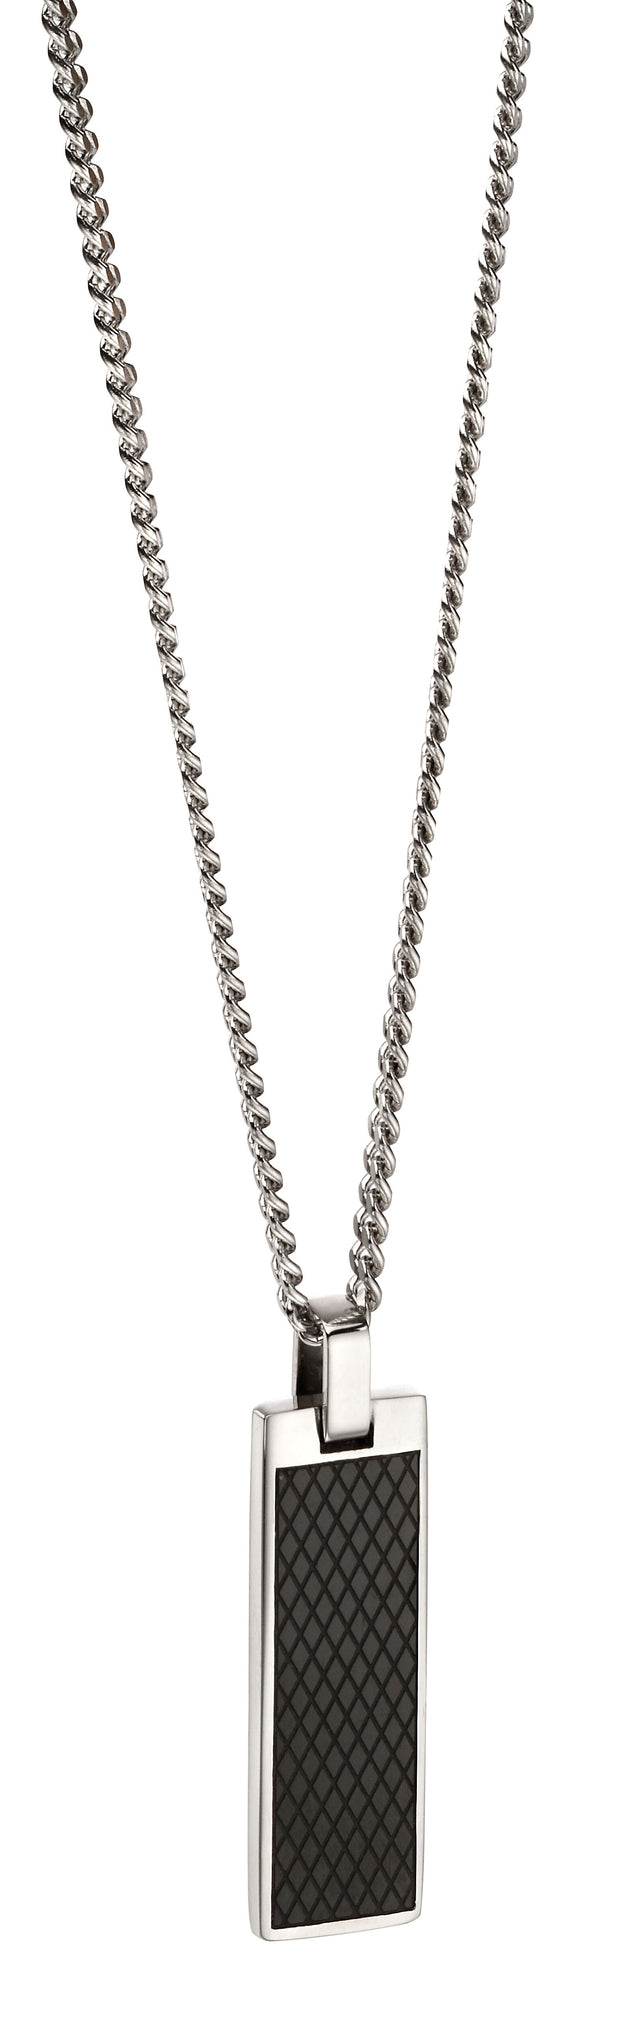 Fred Bennett Stainless Steel Textured Necklace